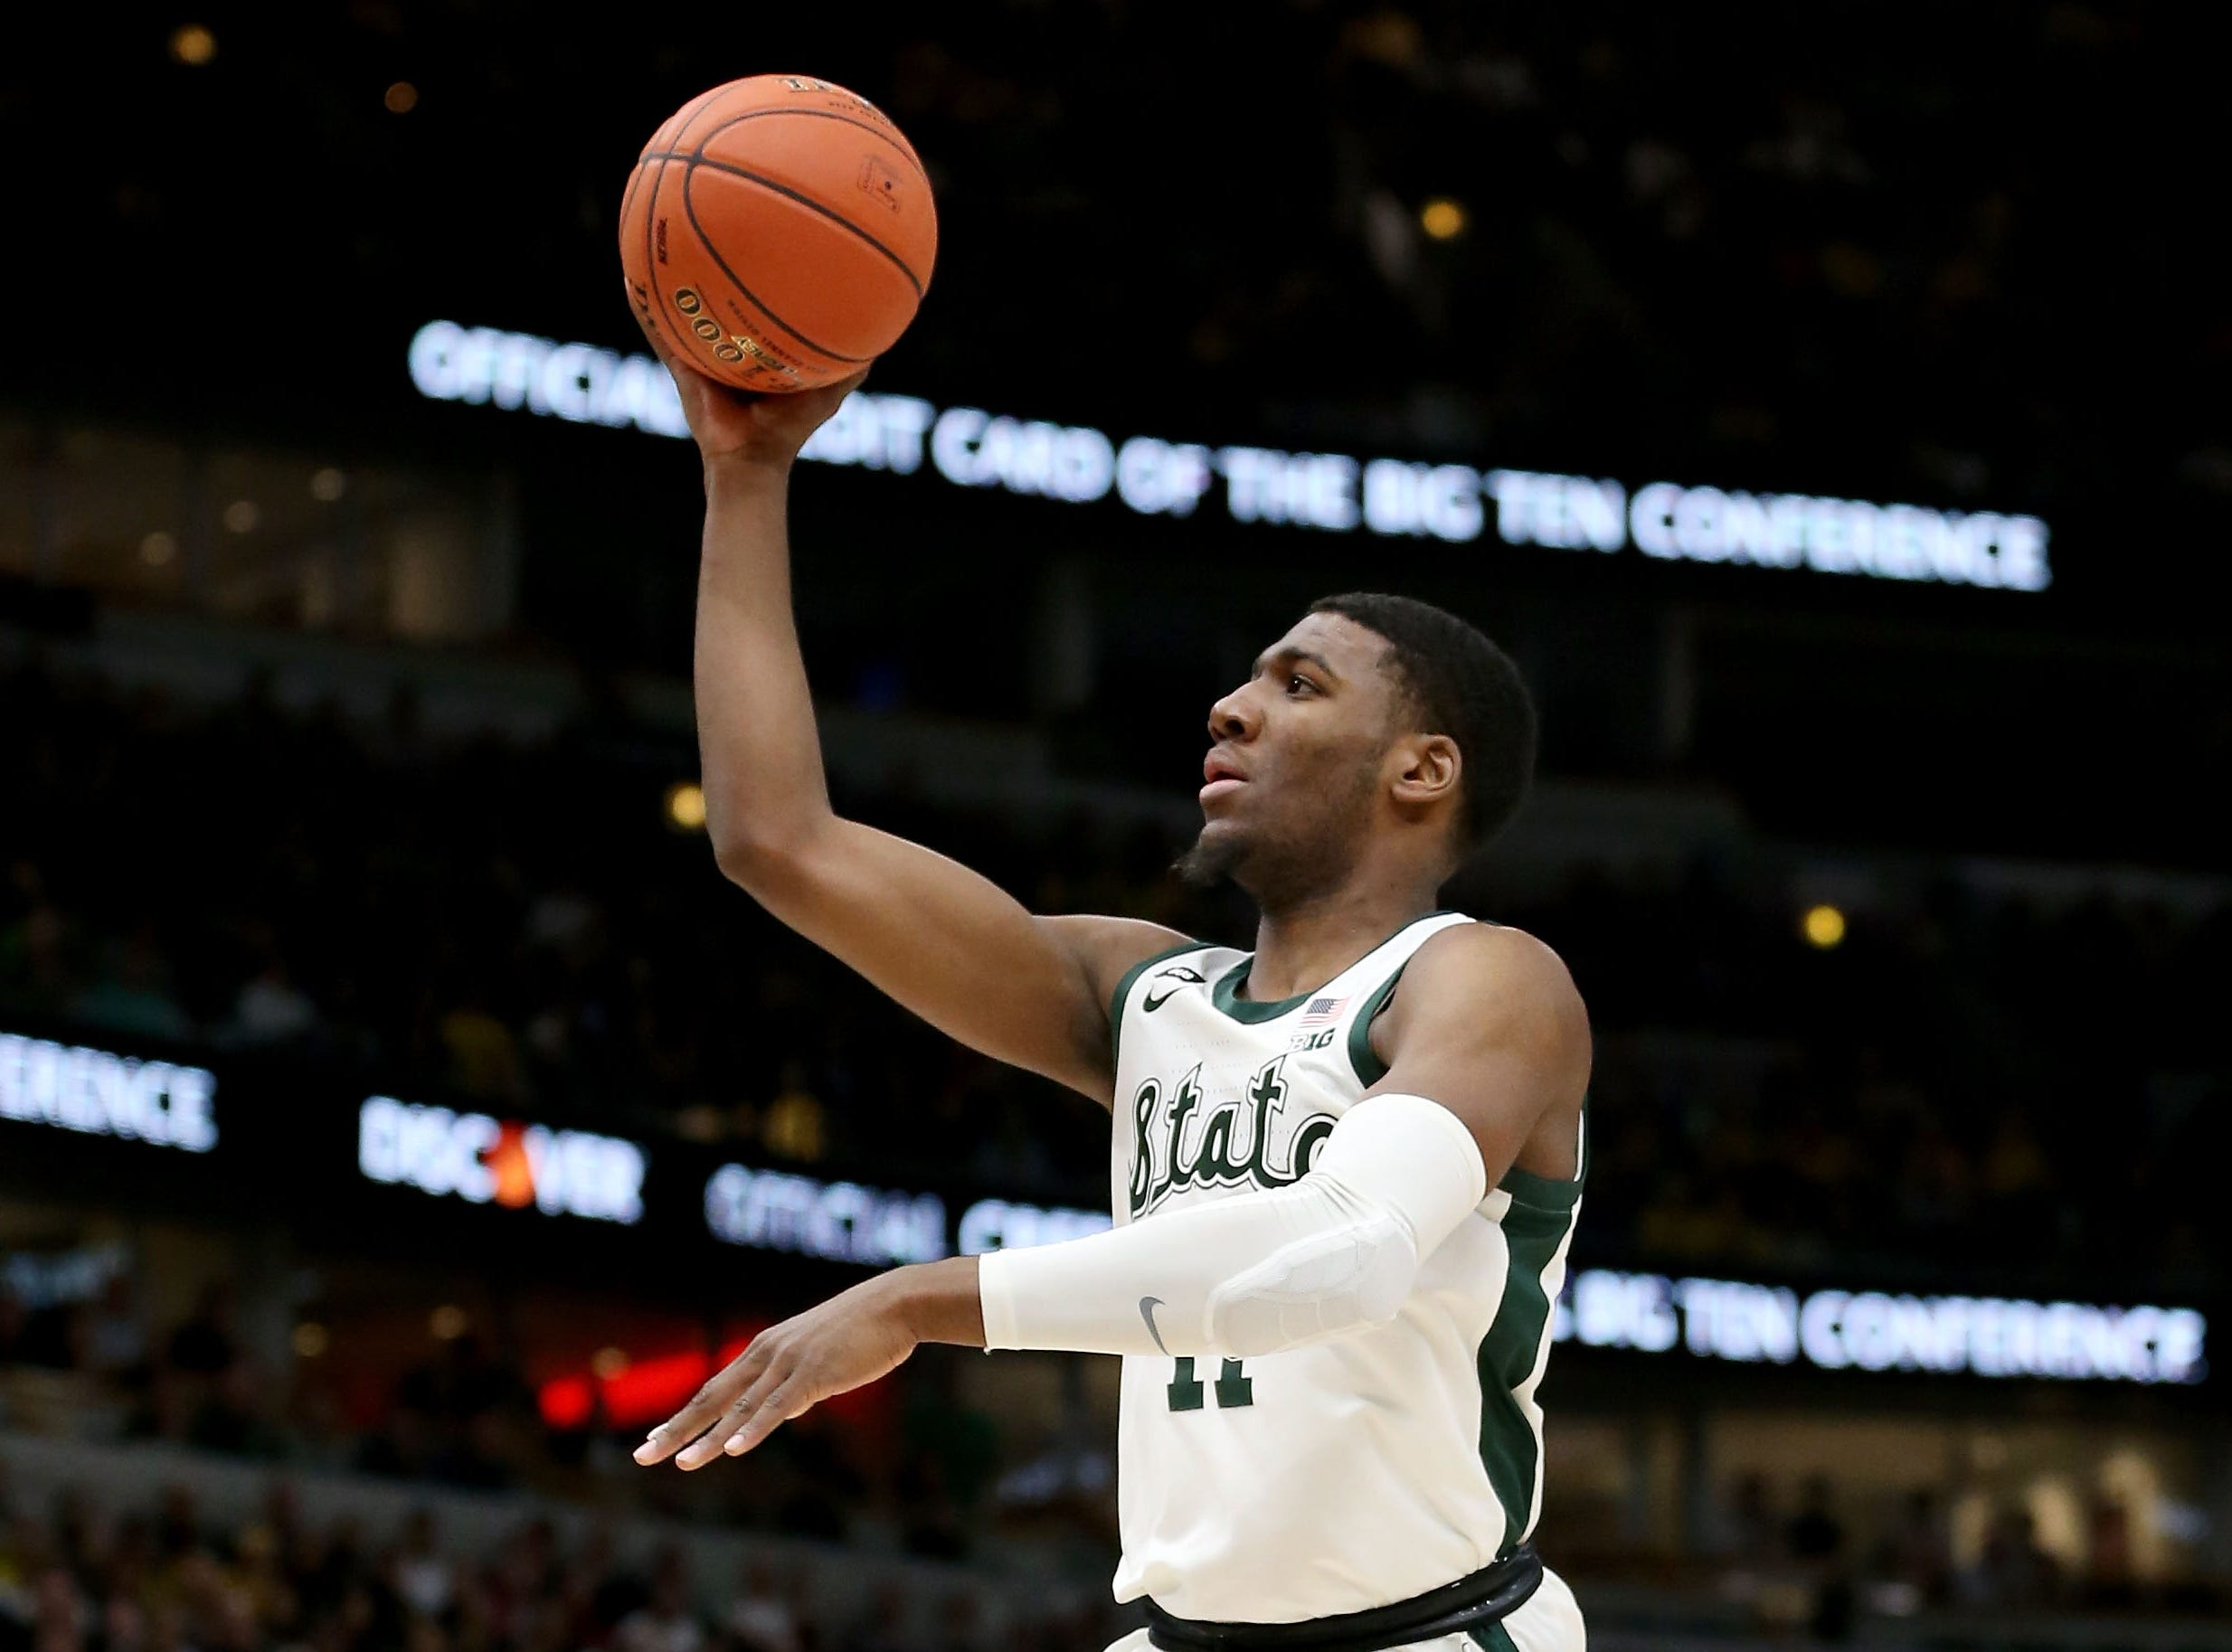 Aaron Henry #11 of the Michigan State Spartans attempts a shot in the first half against the Michigan Wolverines during the championship game of the Big Ten Basketball Tournament at the United Center on March 17, 2019 in Chicago, Illinois.